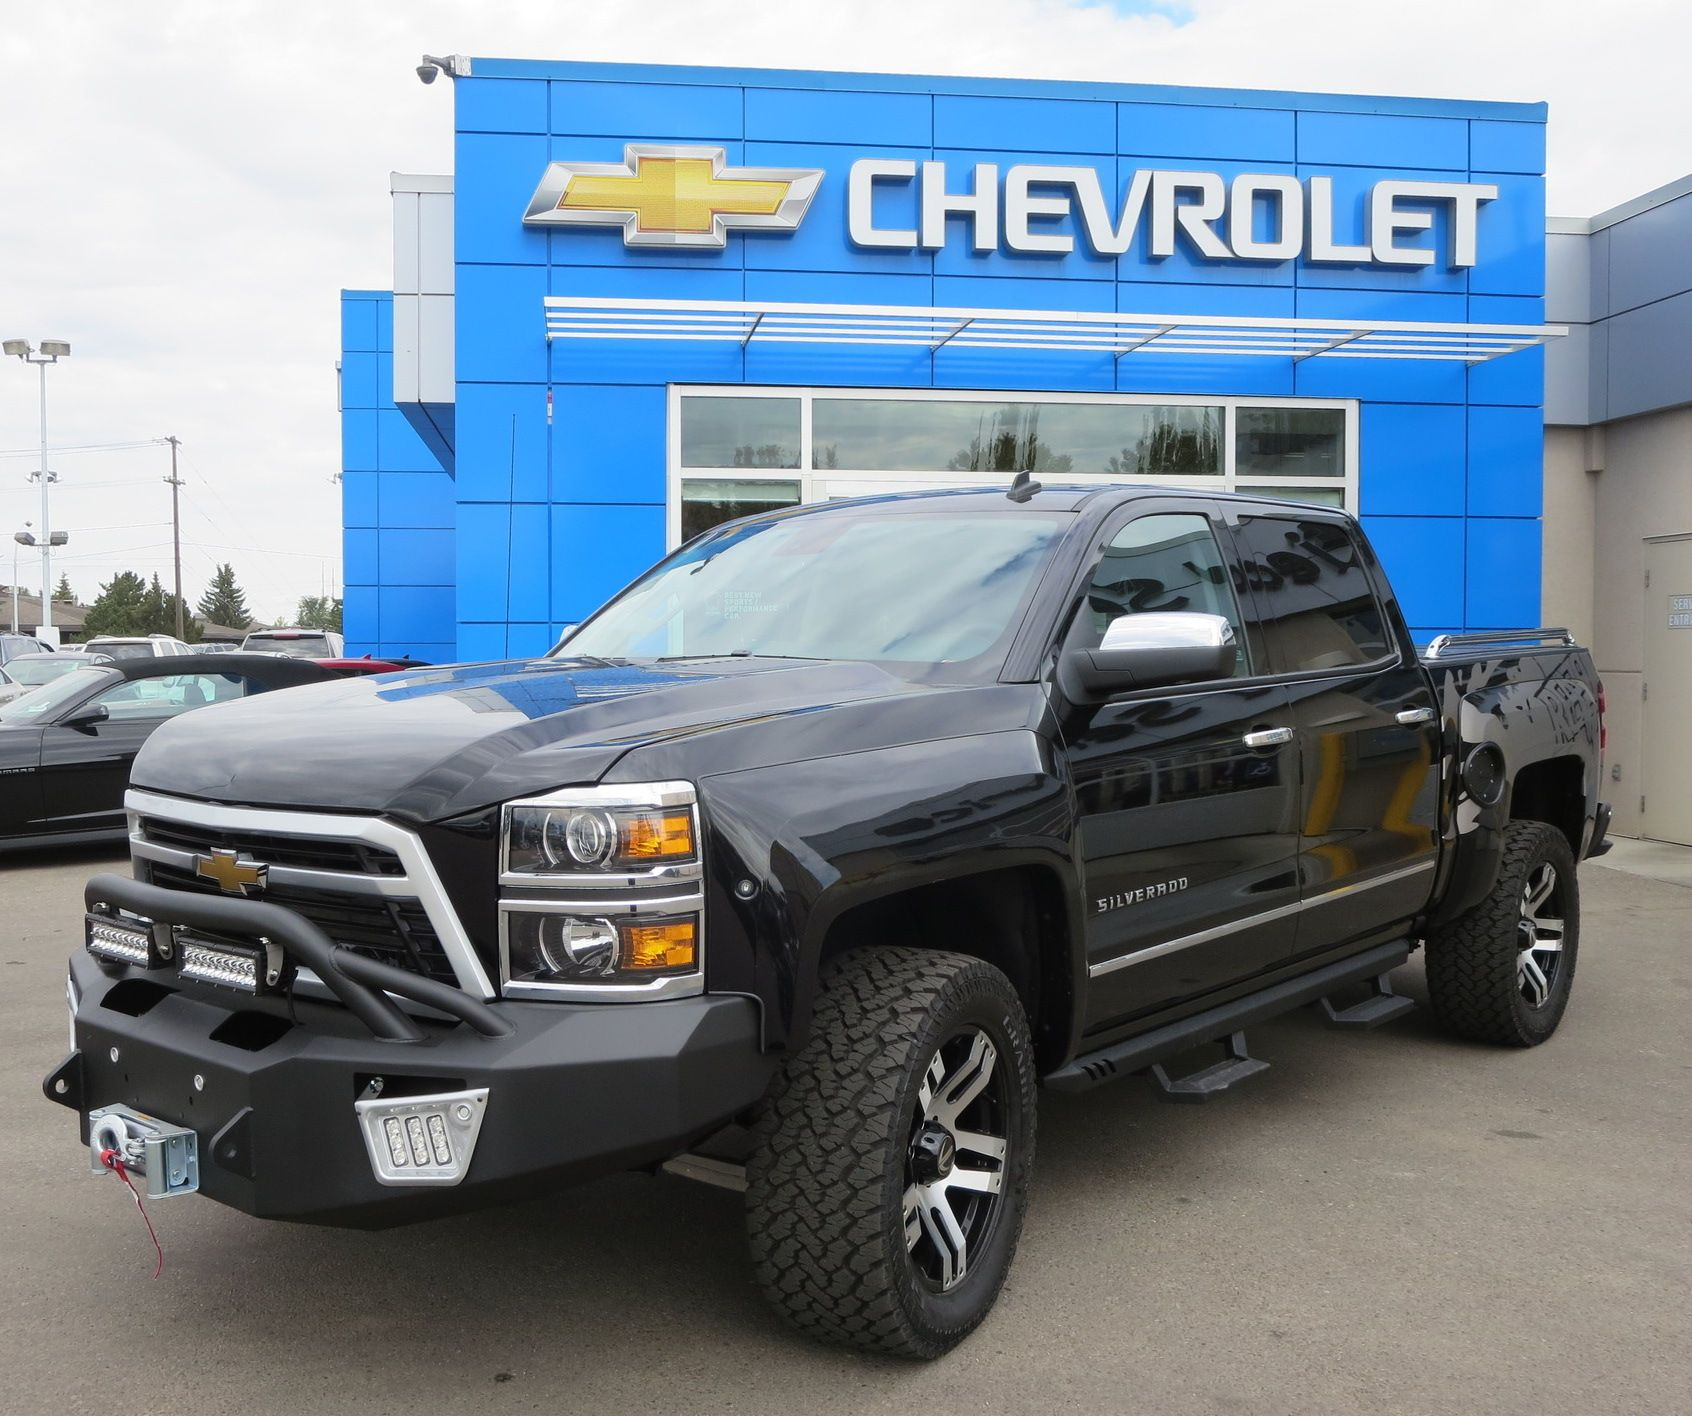 silverado hq for pictures reaper wallpapers movie sale chevrolet